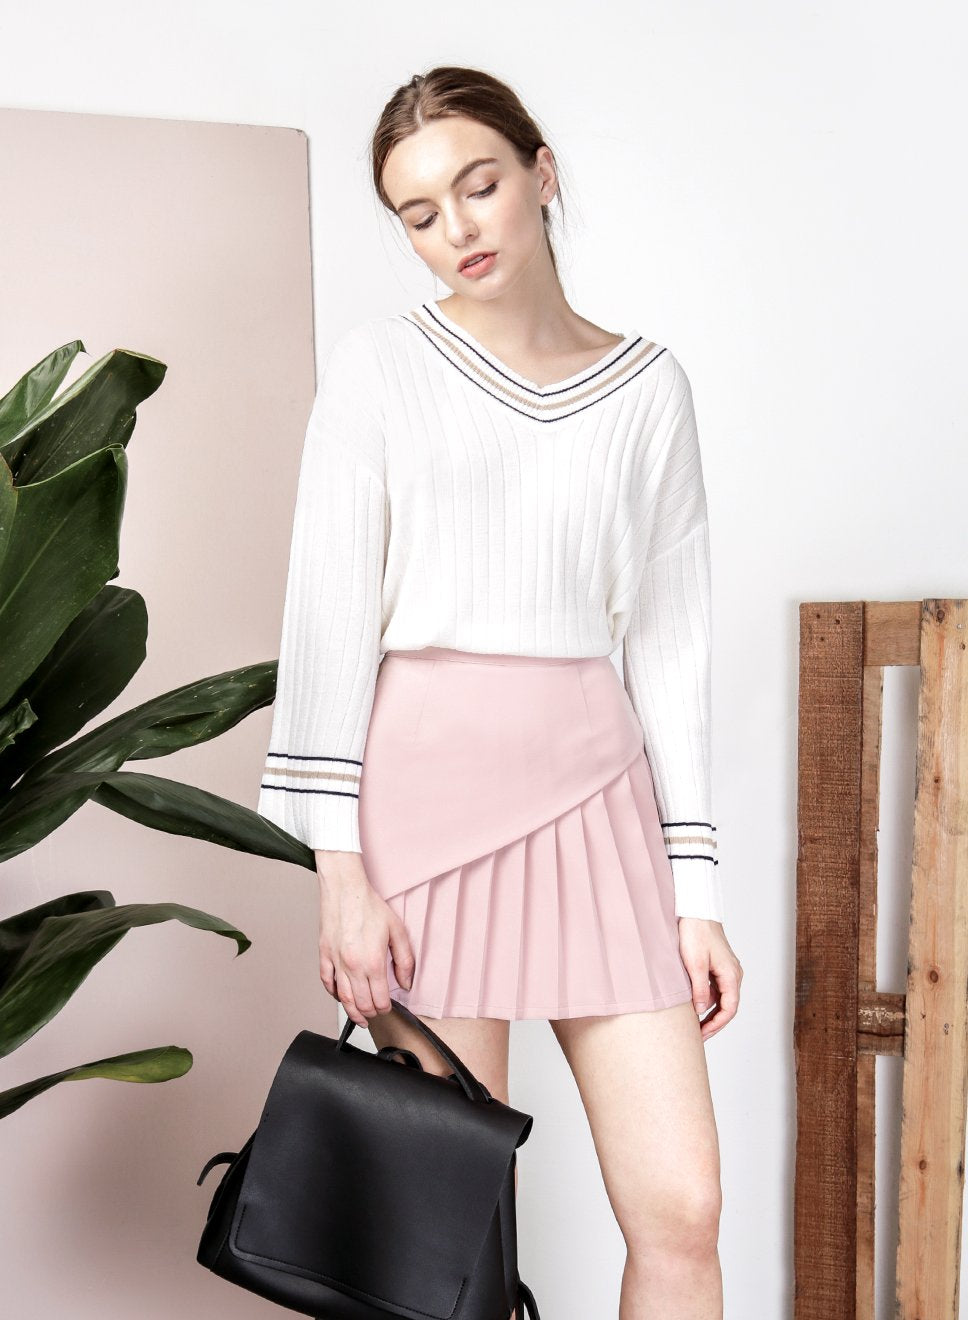 SAGE Overlap Pleat Skirt (Mauve) at $ 21.50 only sold at And Well Dressed Online Fashion Store Singapore